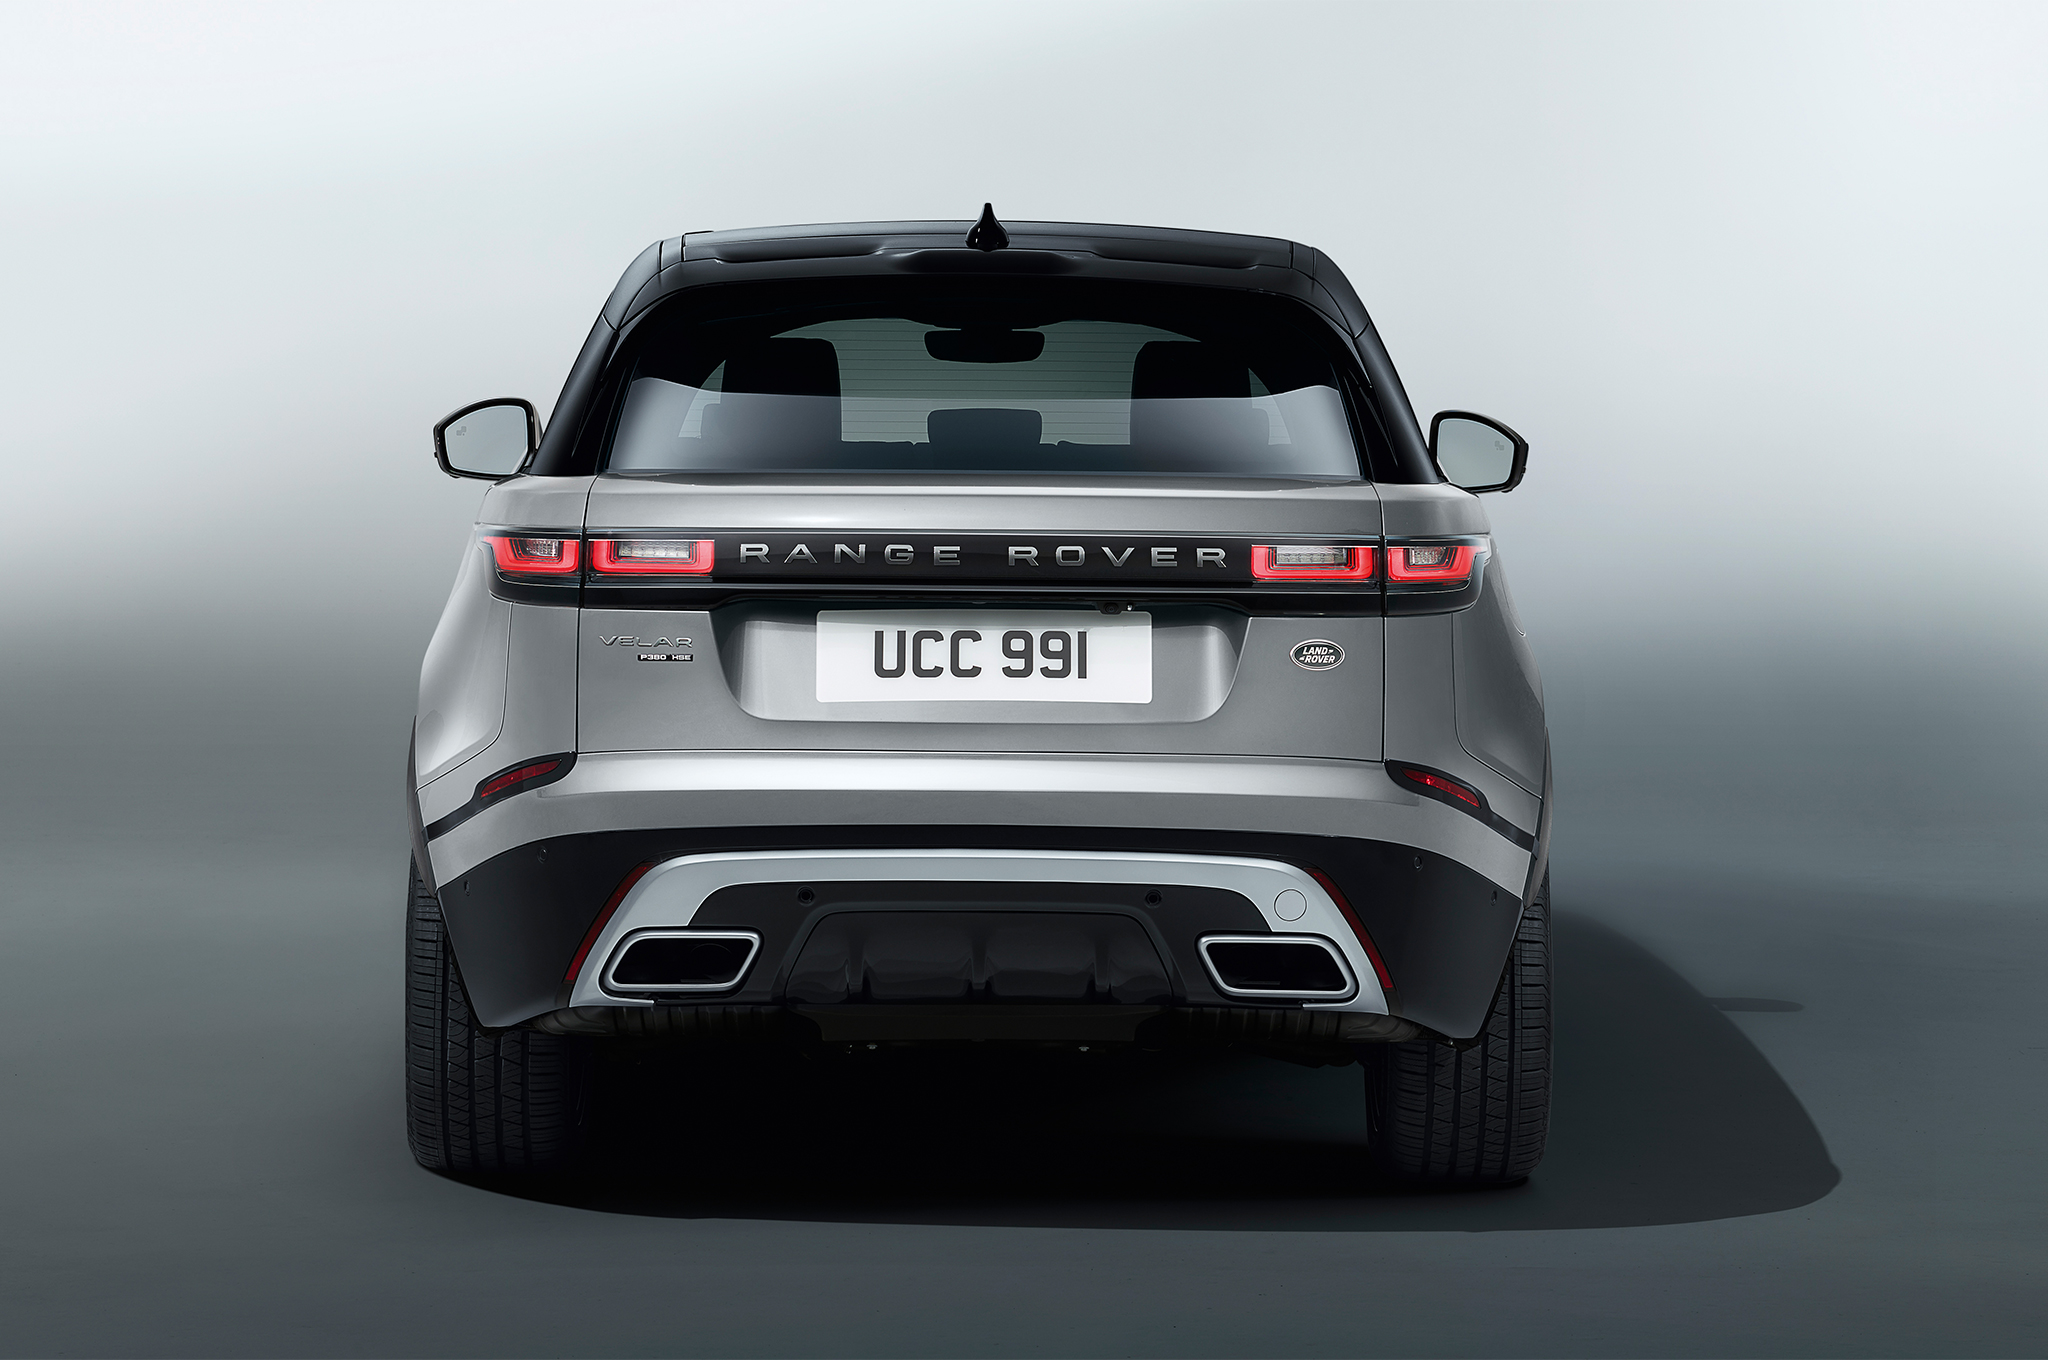 Introducing the all new Range Rover Velar